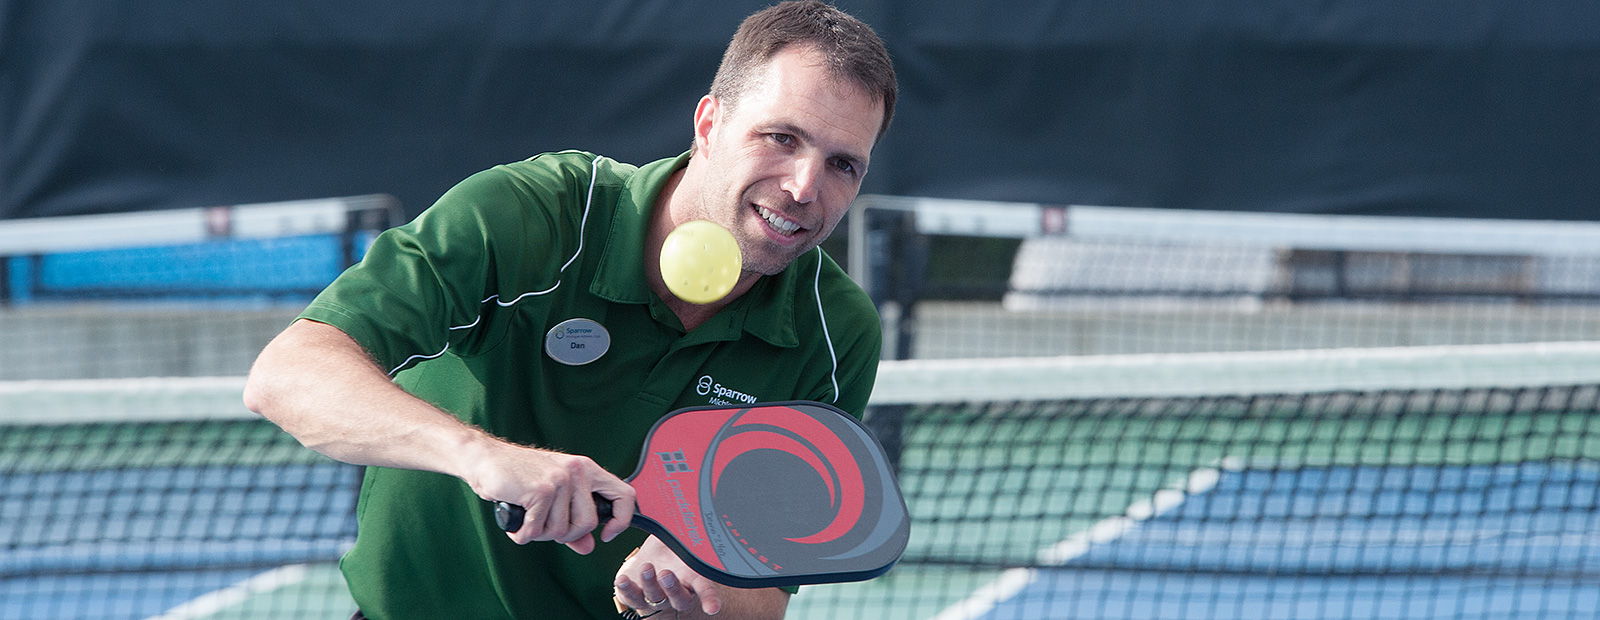 Daniel Howard playing Pickle Ball at he MAC - Photo Dave Trumpie